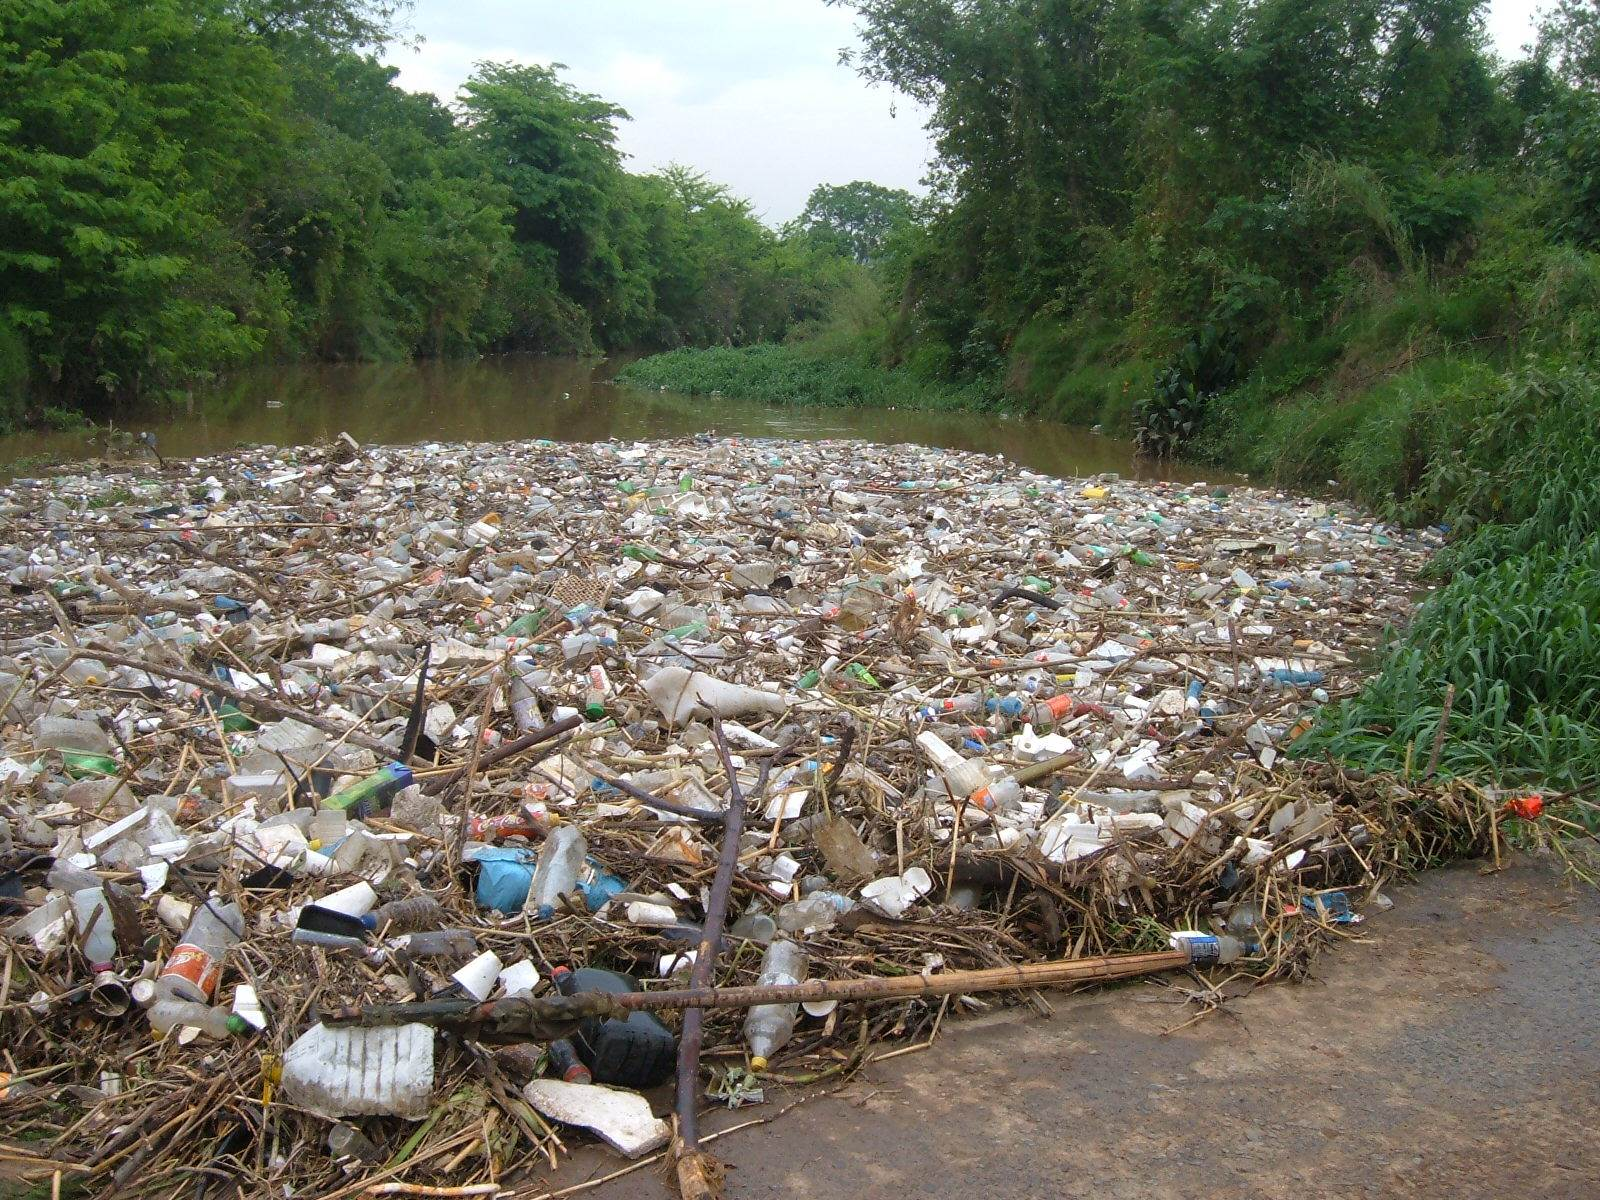 Solid waste. We need to focus on conserving our water resources better. DUCT